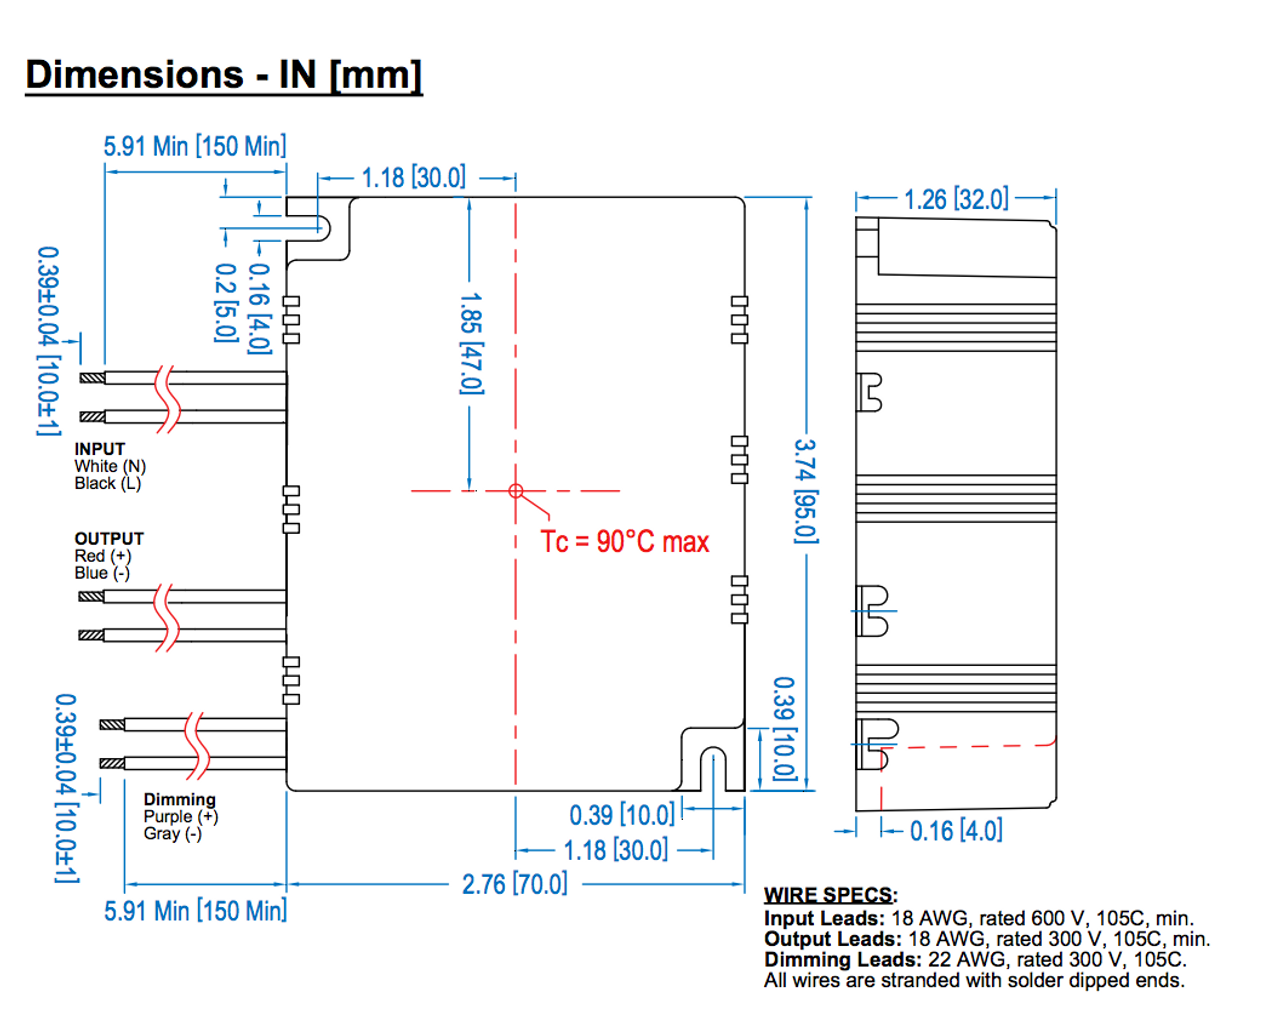 Led40w 114 C0350 D Thomas Research Products Dimmable Led Power Supply Ballast Wiring Diagram On T12 Mag Ic T5